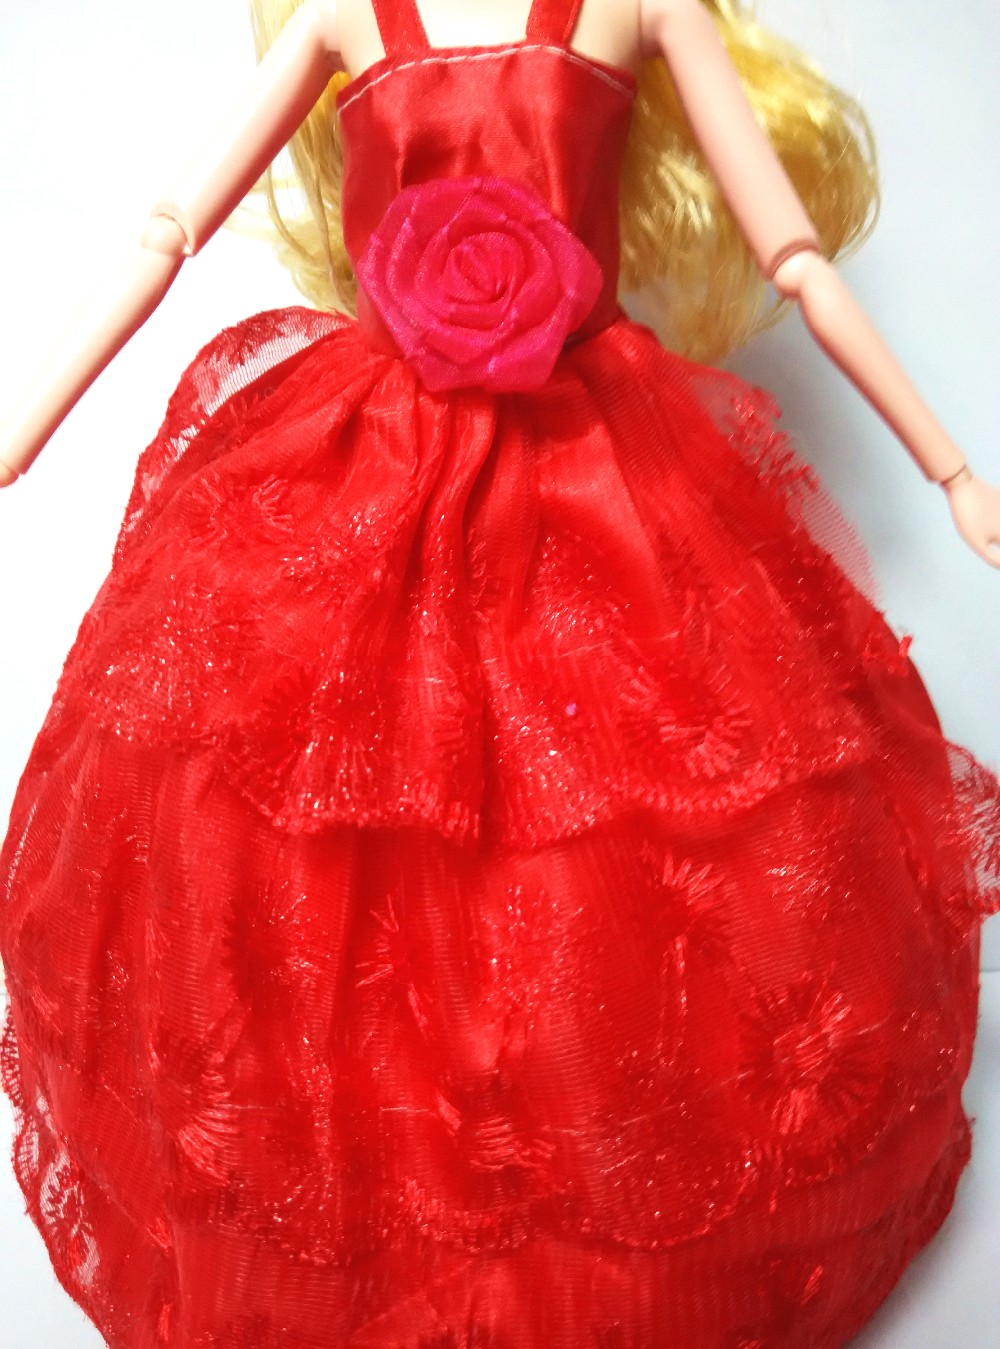 2016 New handmade Lovely Elegant Marriage ceremony Attire Yarn Garments Night Gown for Barbie Lady Dolls Free Transport Rose Pink